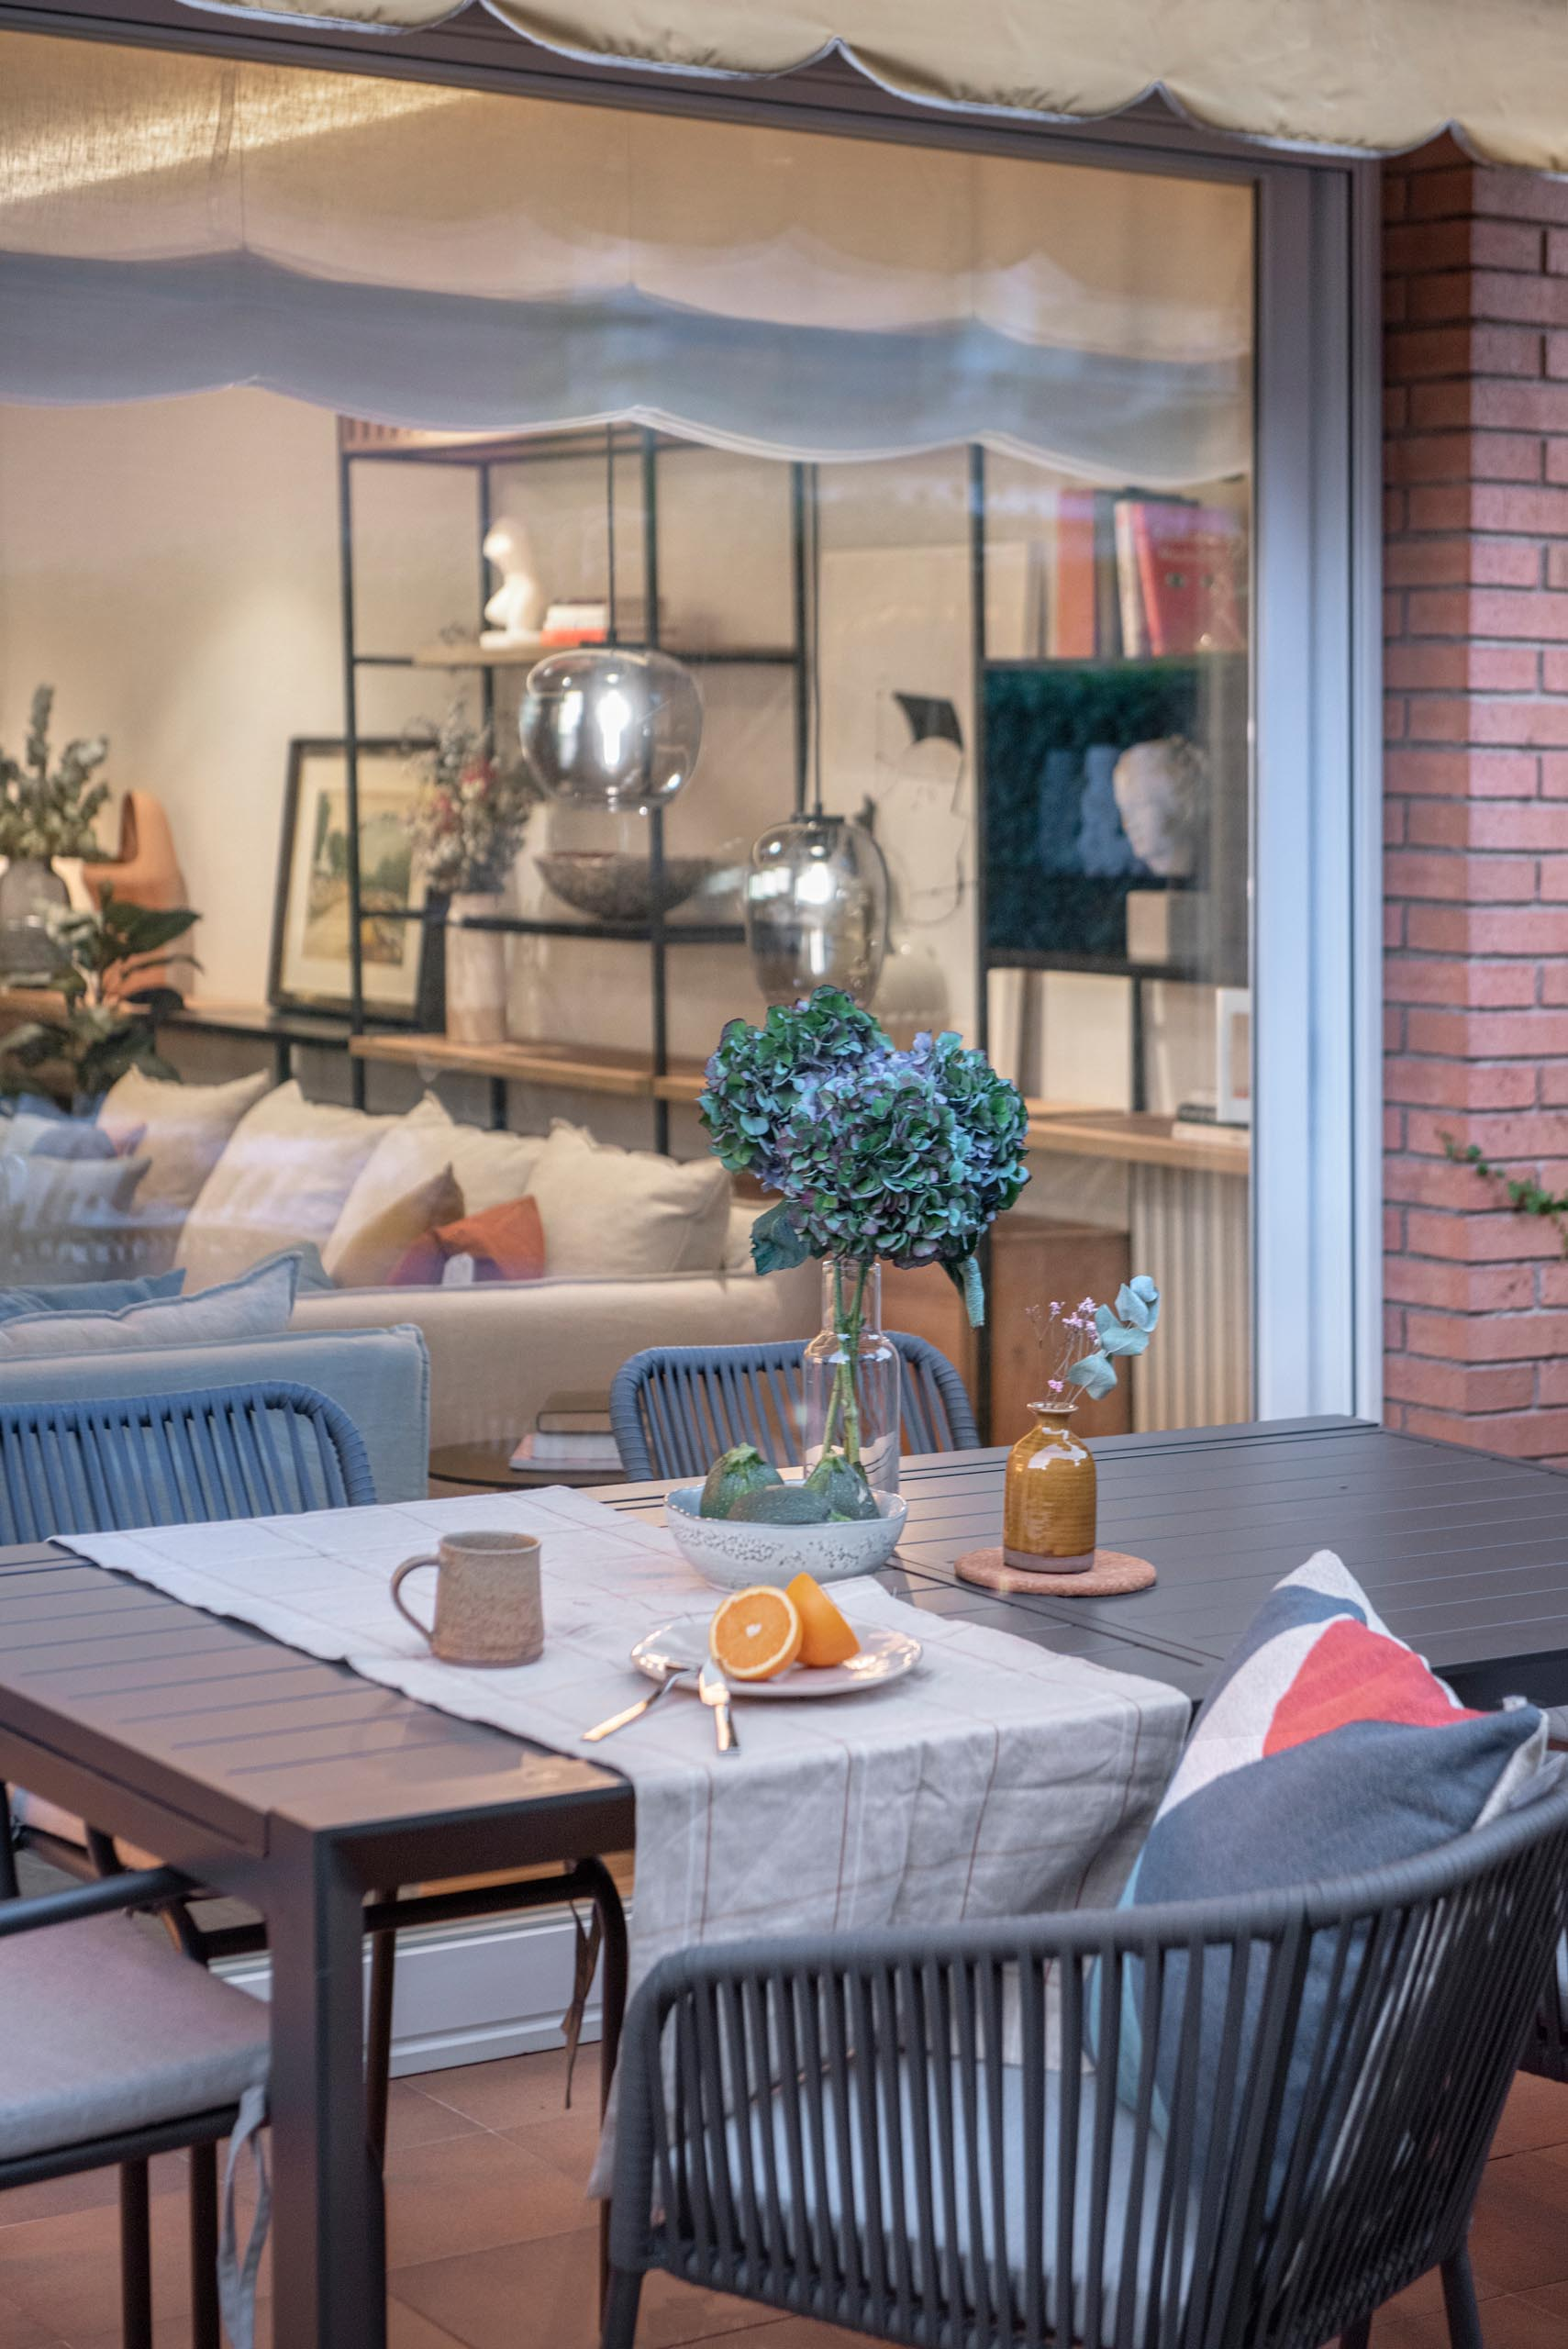 This garden terrace is furnished with an outdoor lounge and an alfresco dining area.